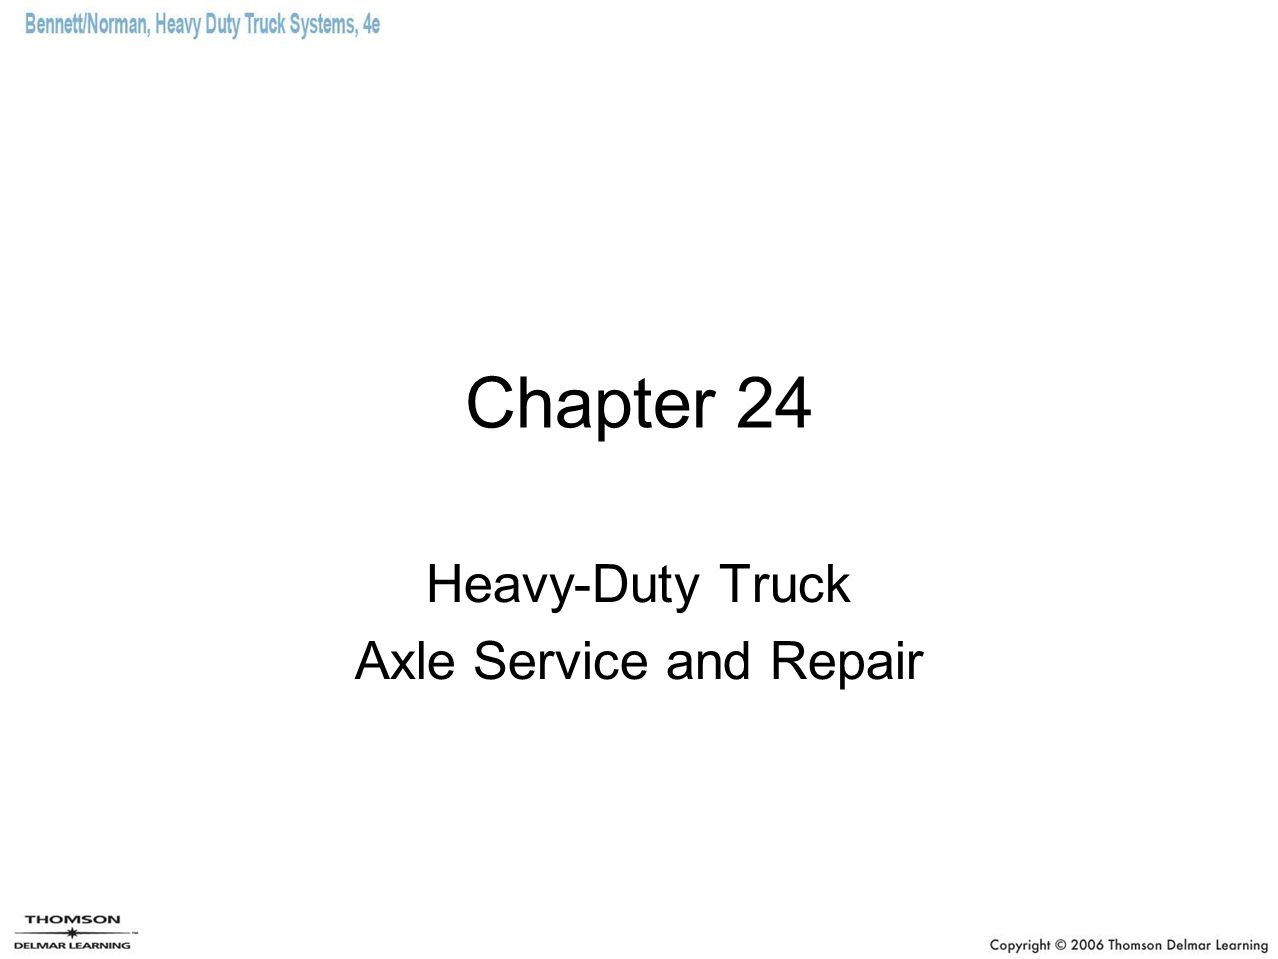 Heavy-Duty Truck Axle Service and Repair